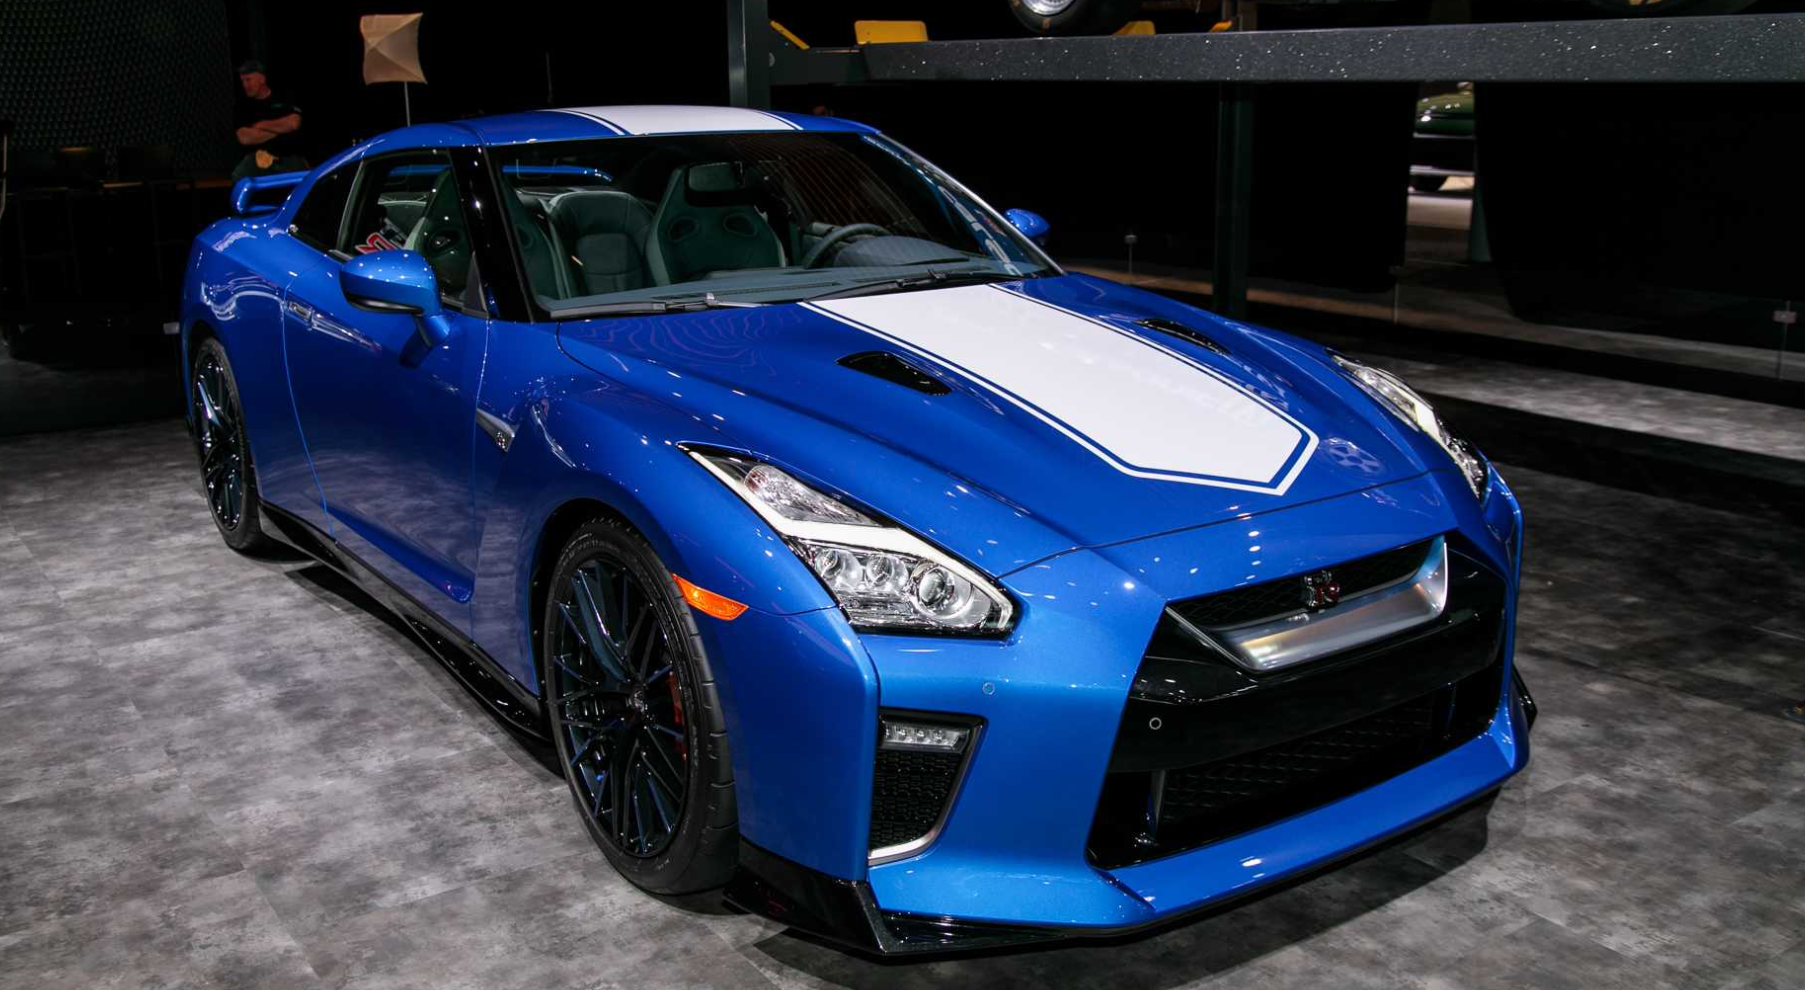 2020 Nissan R35 GT-R Redesign